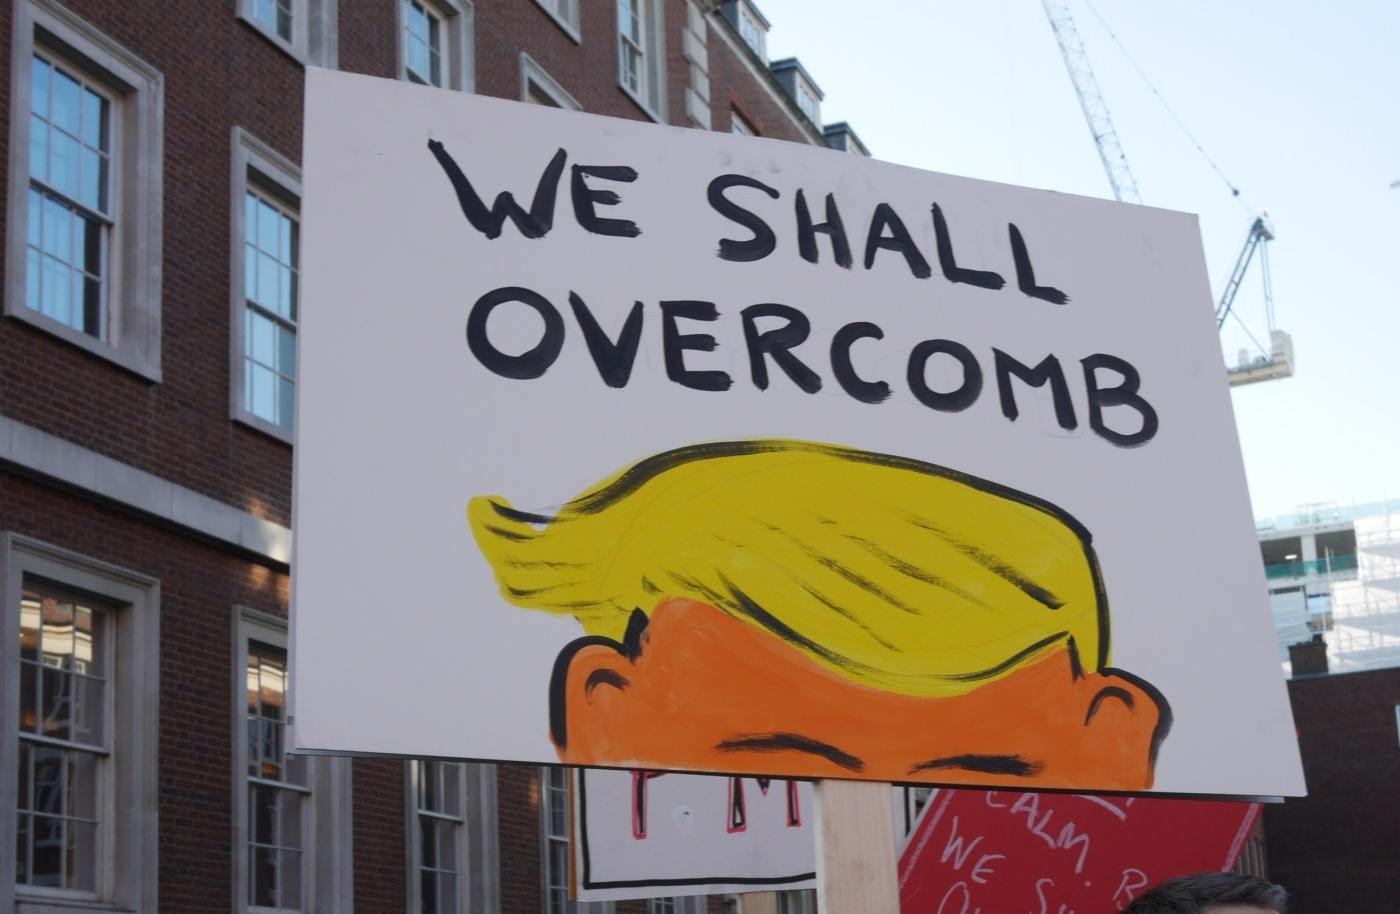 We Shall Overcomb Placard